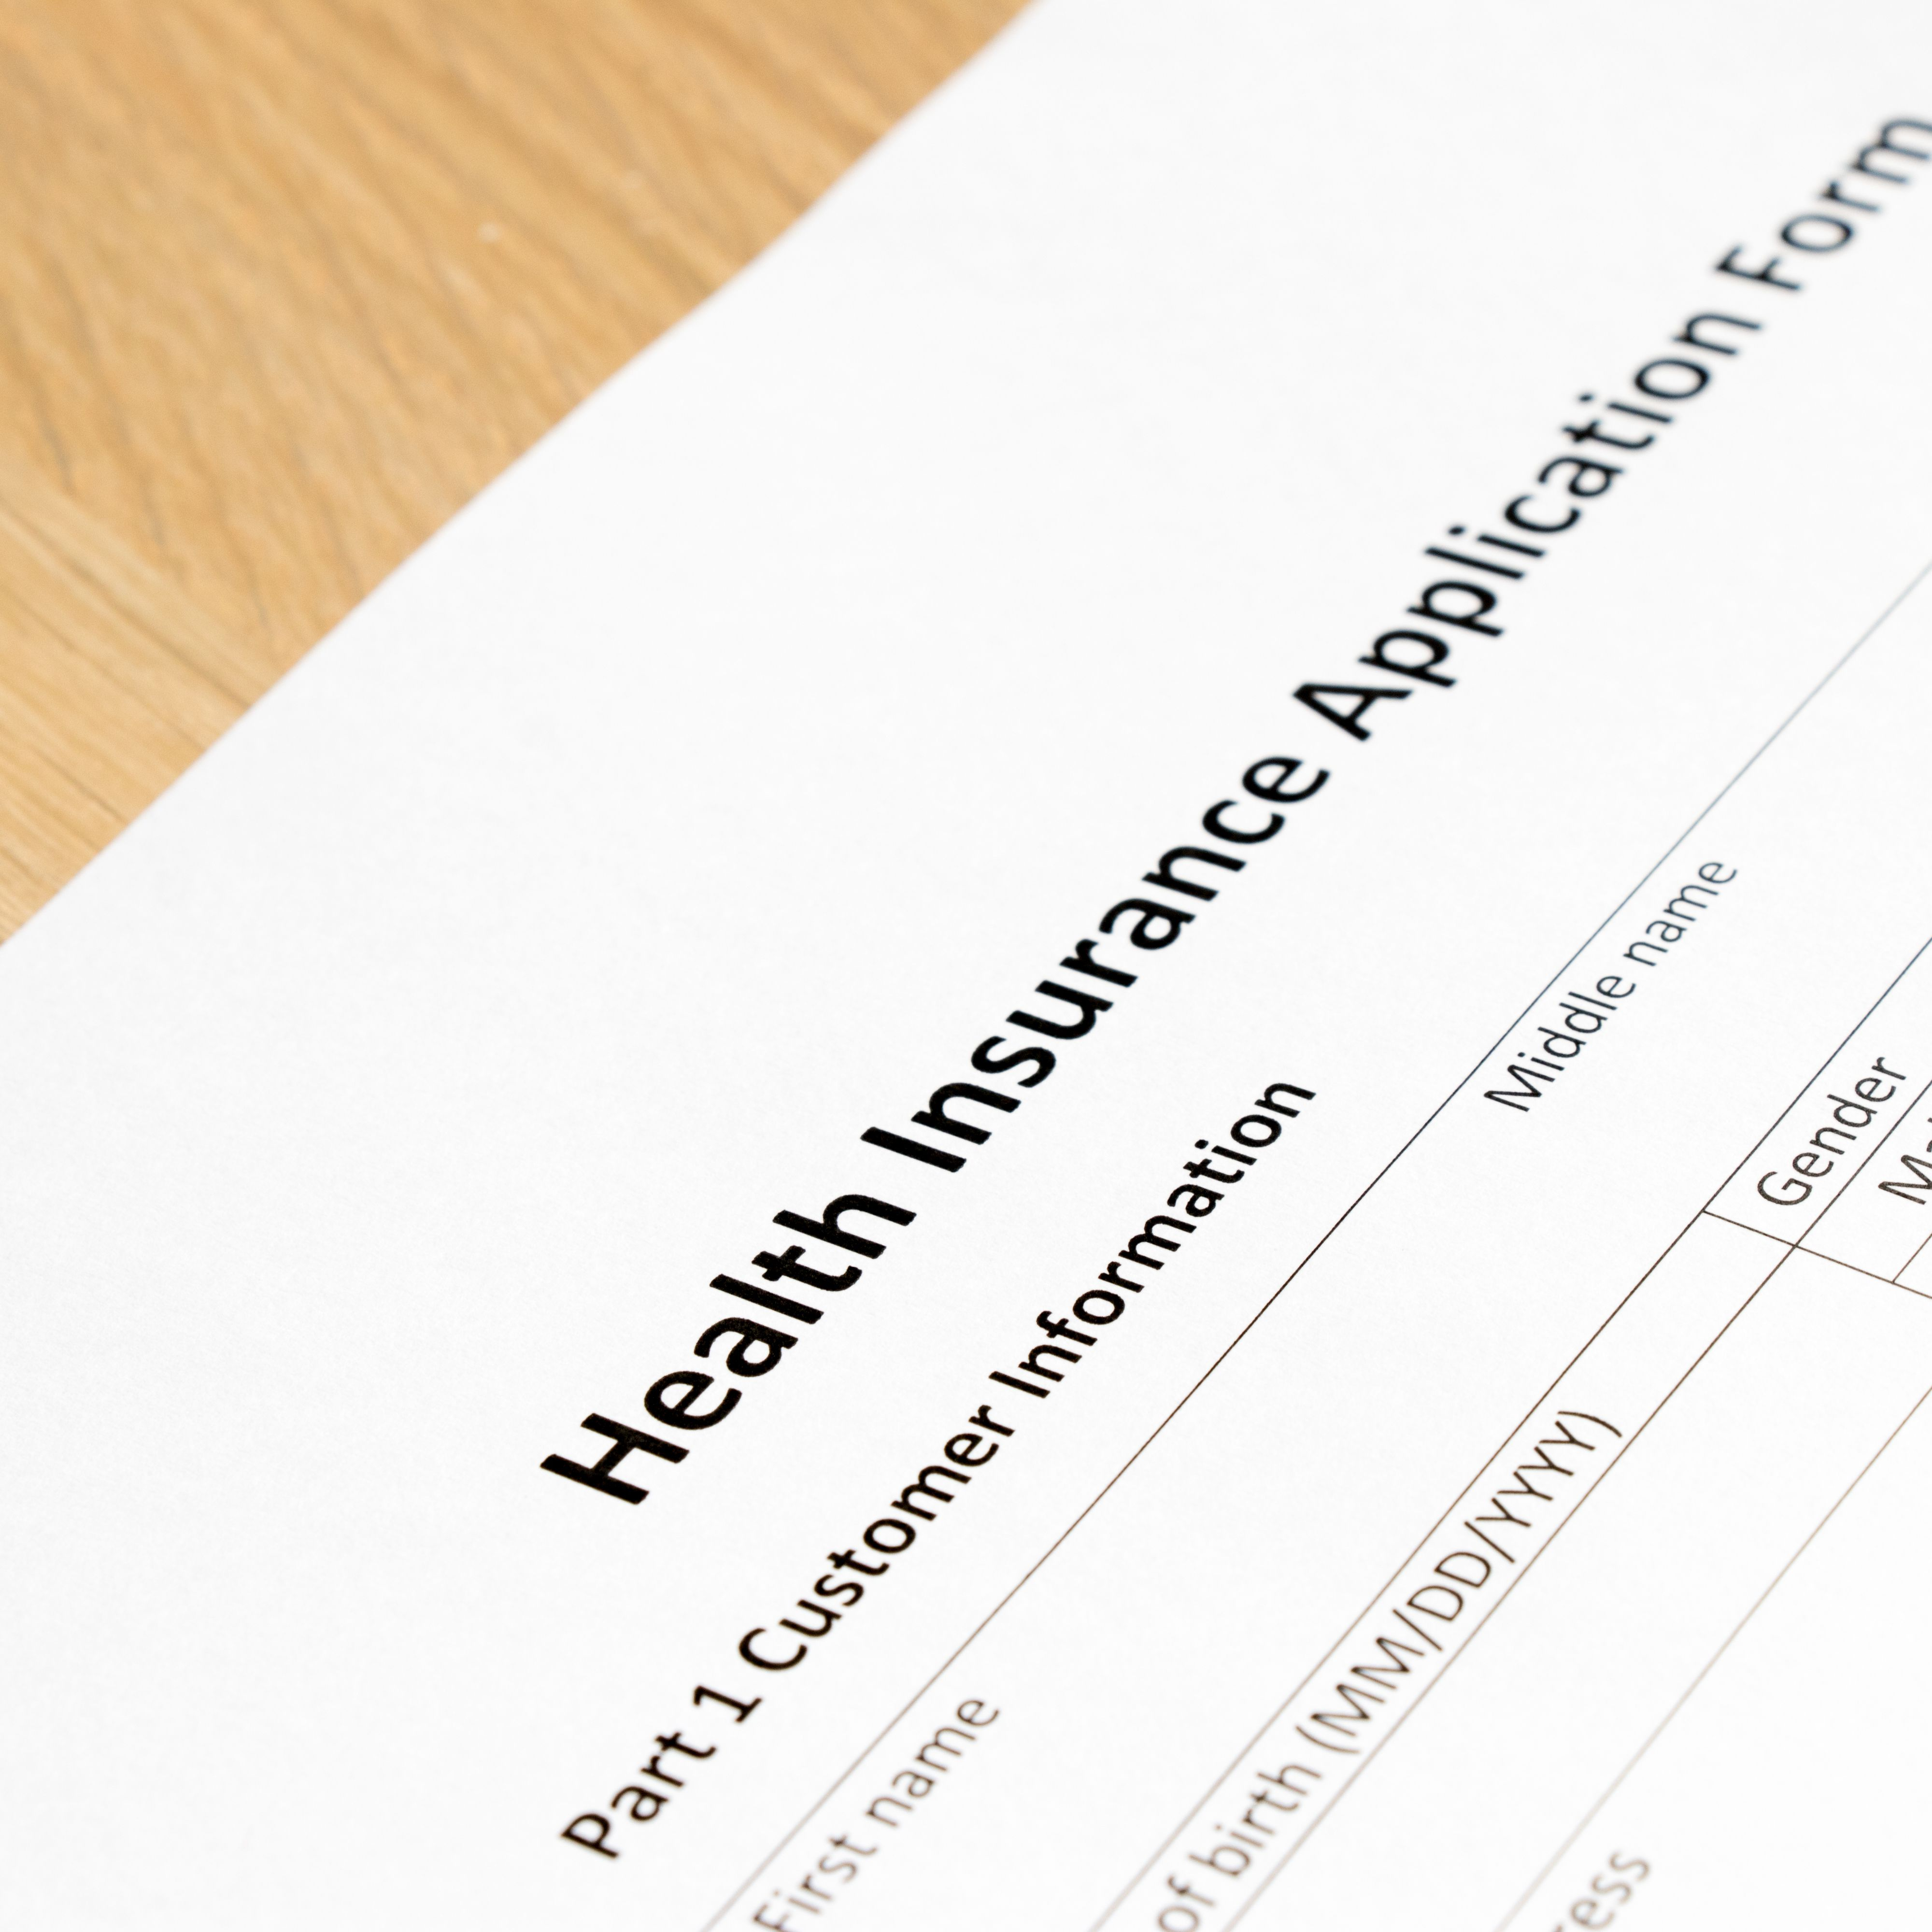 Medical Claim Letter Format from www.thebalance.com